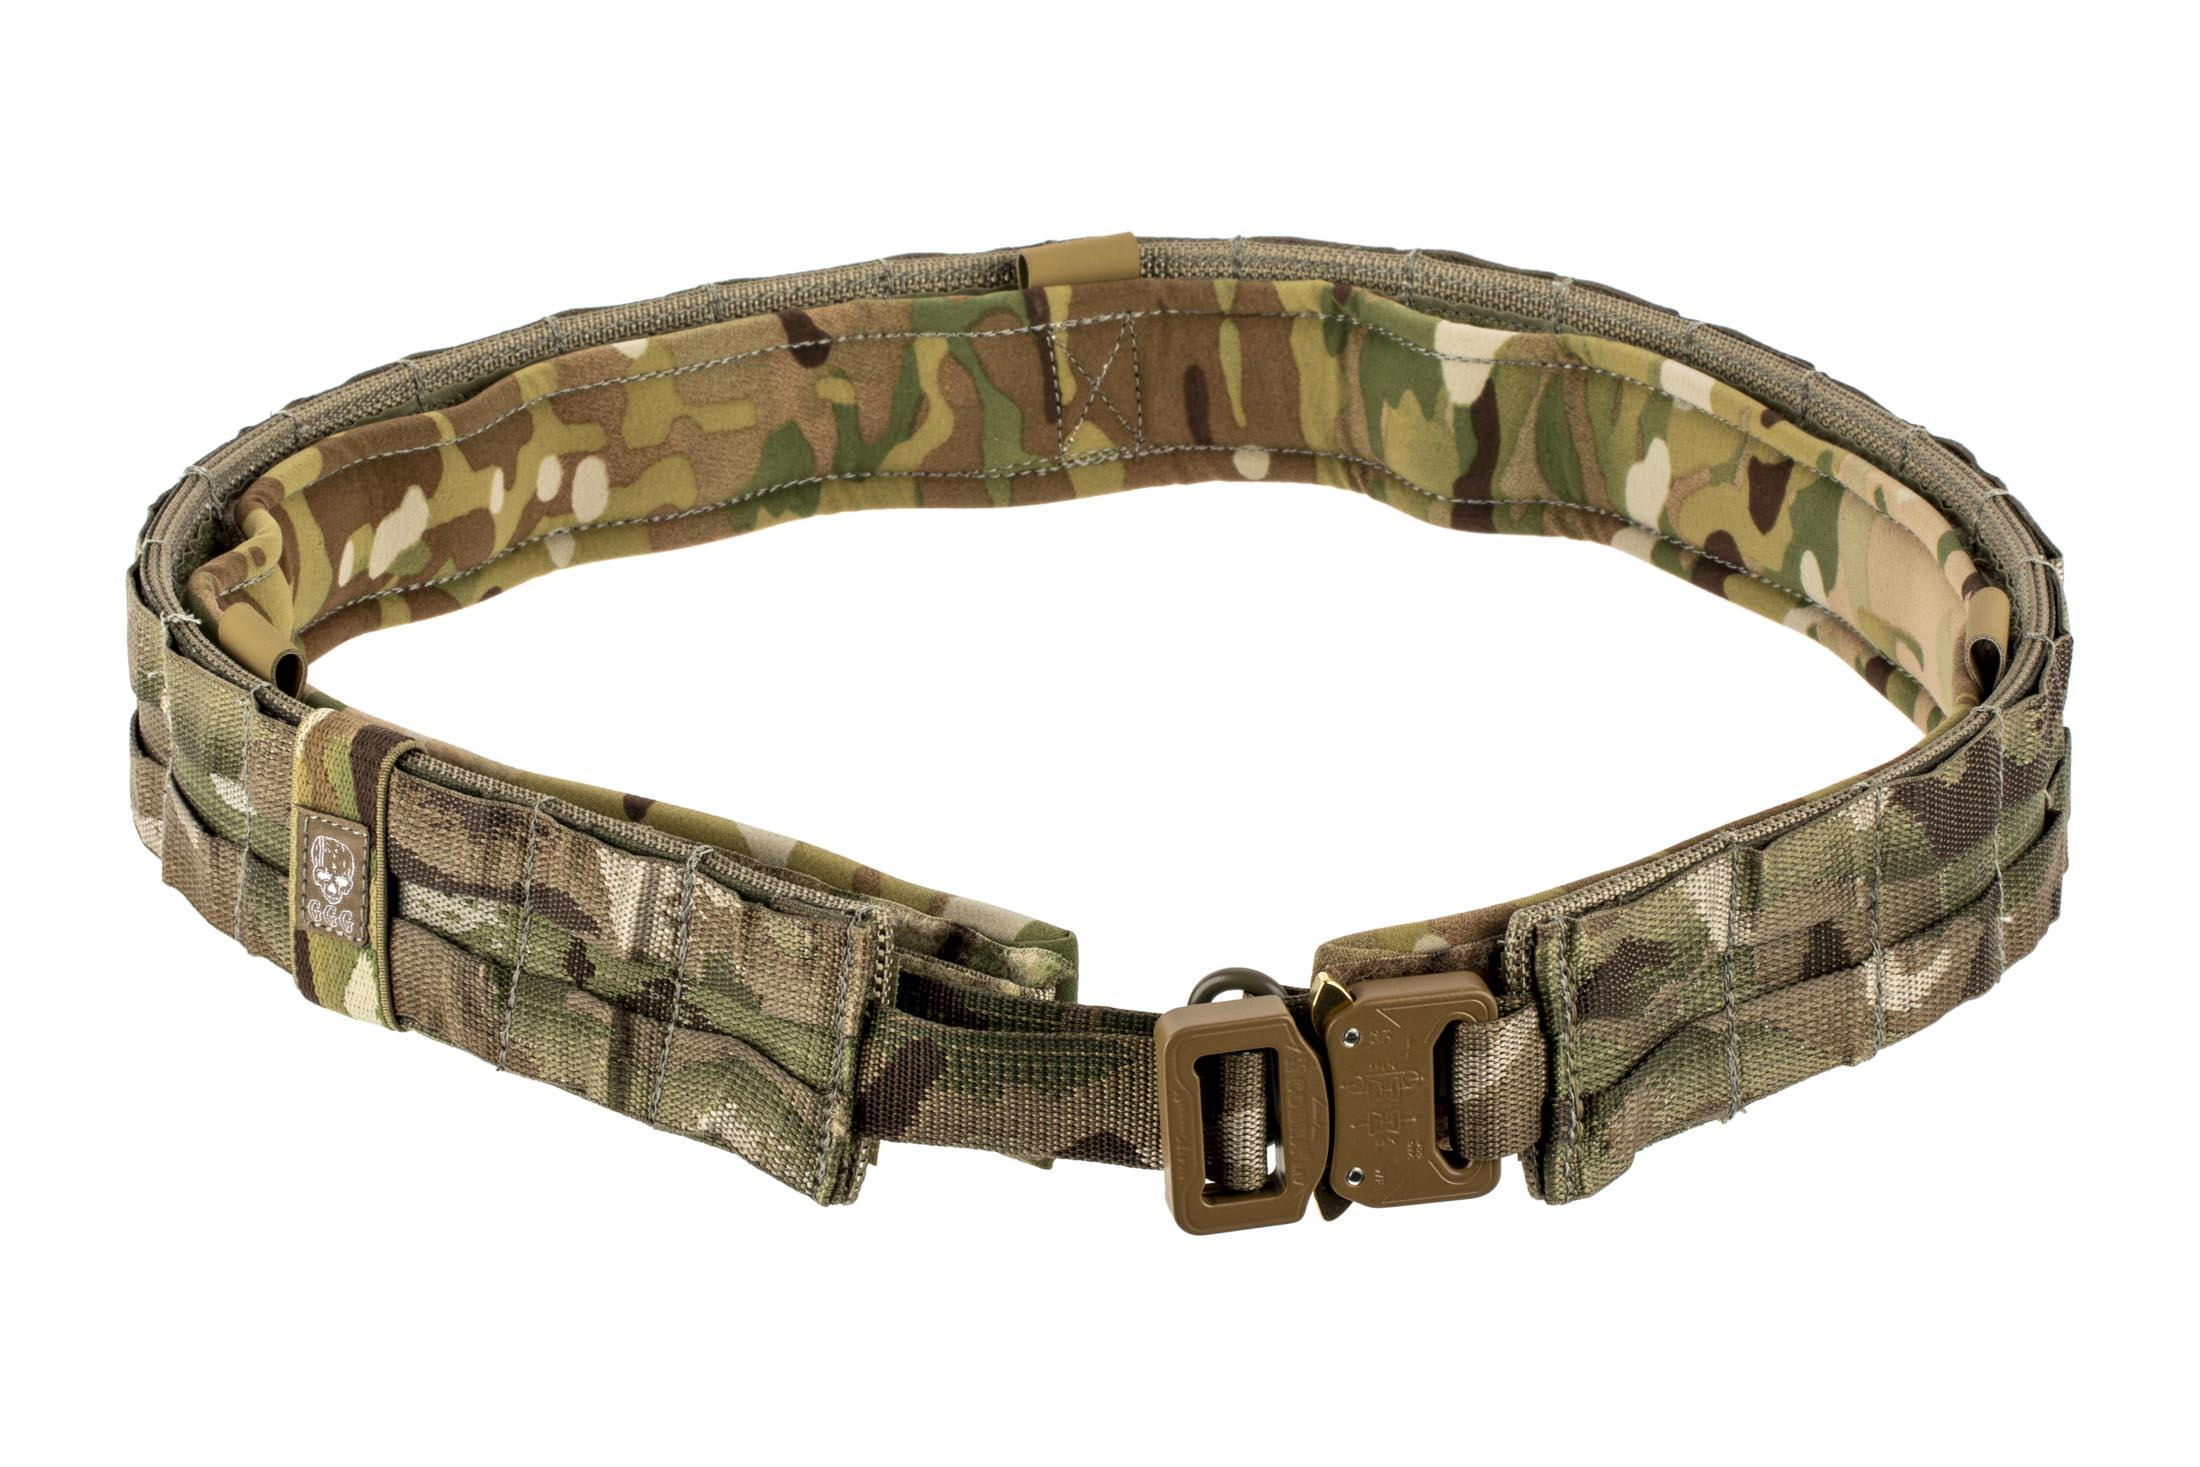 The Grey Ghost Gear UGF Large Battle belt features a Multicam color and Cobra buckle